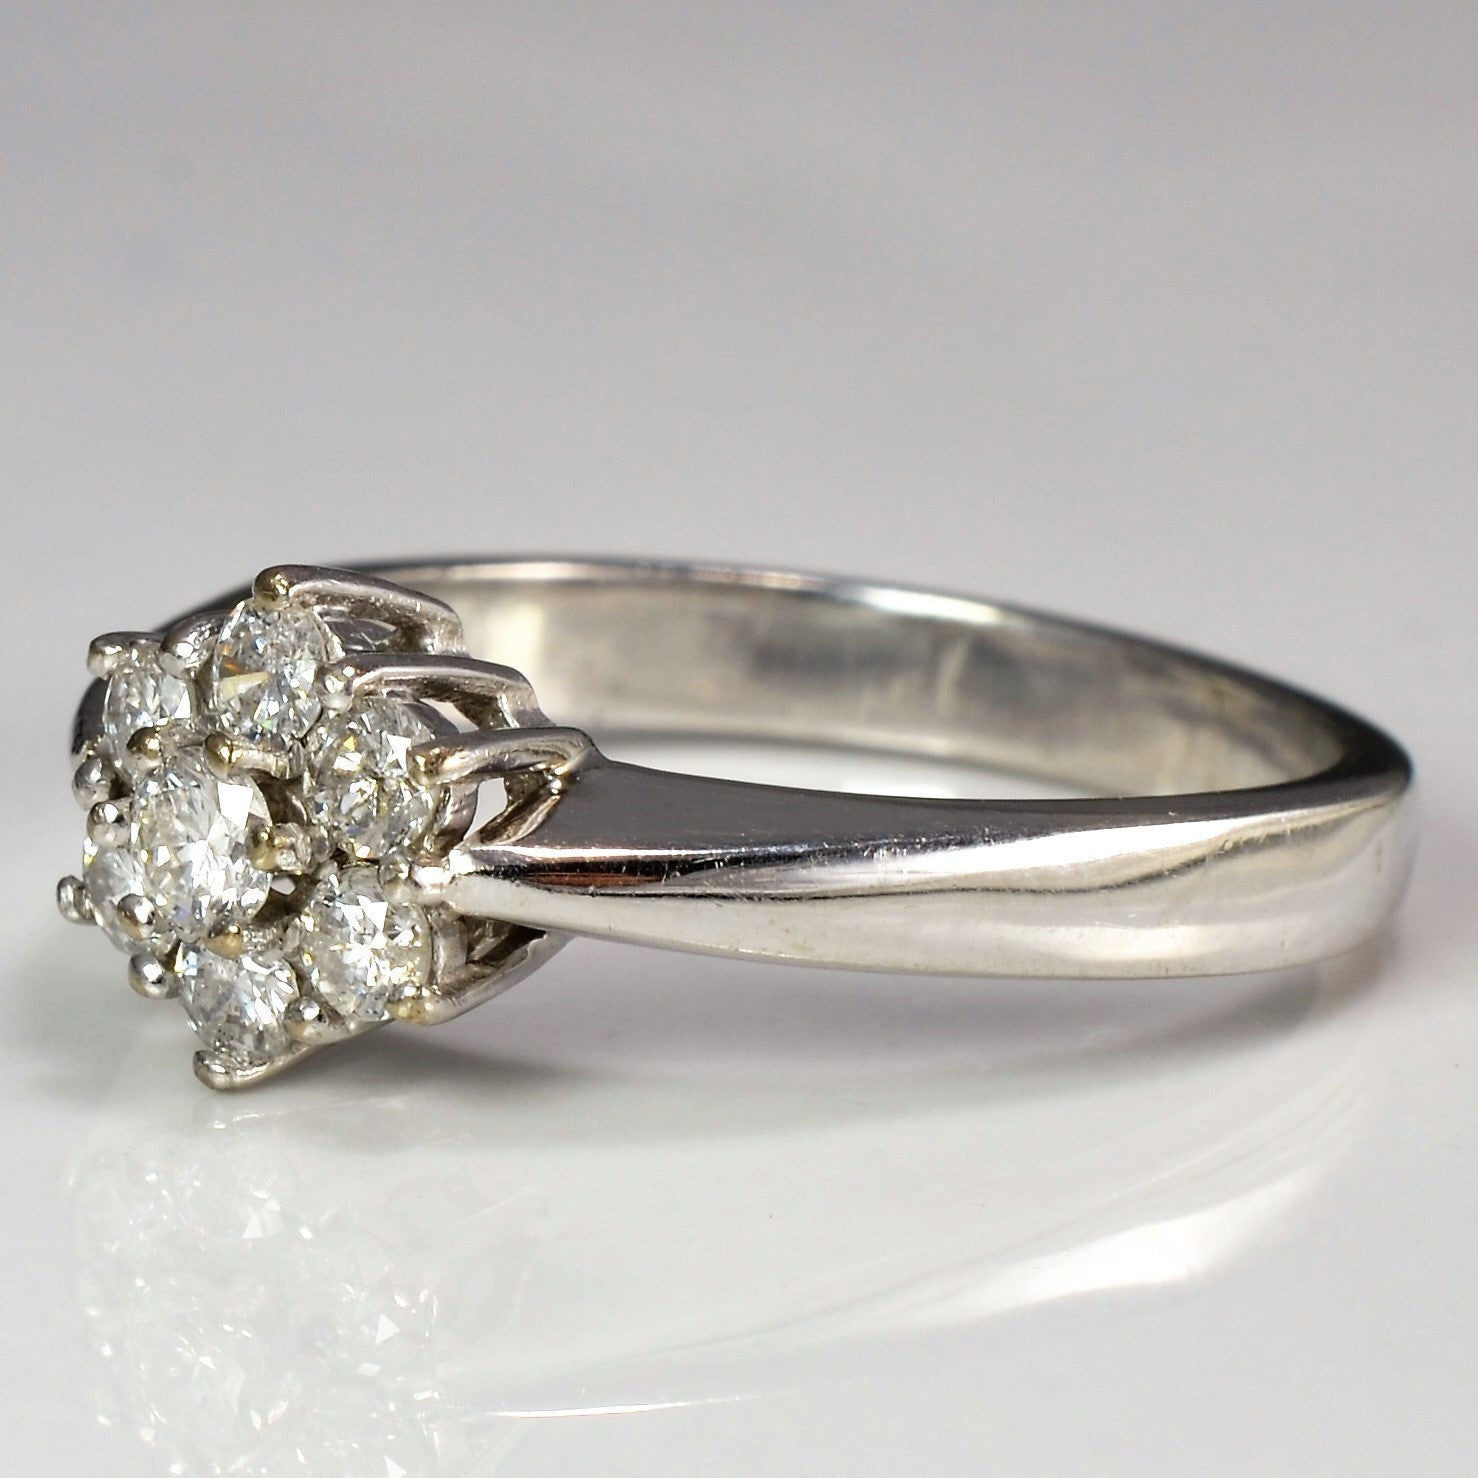 Tapered Floral Diamond Ring | 0.50 ctw, SZ 8.5 |